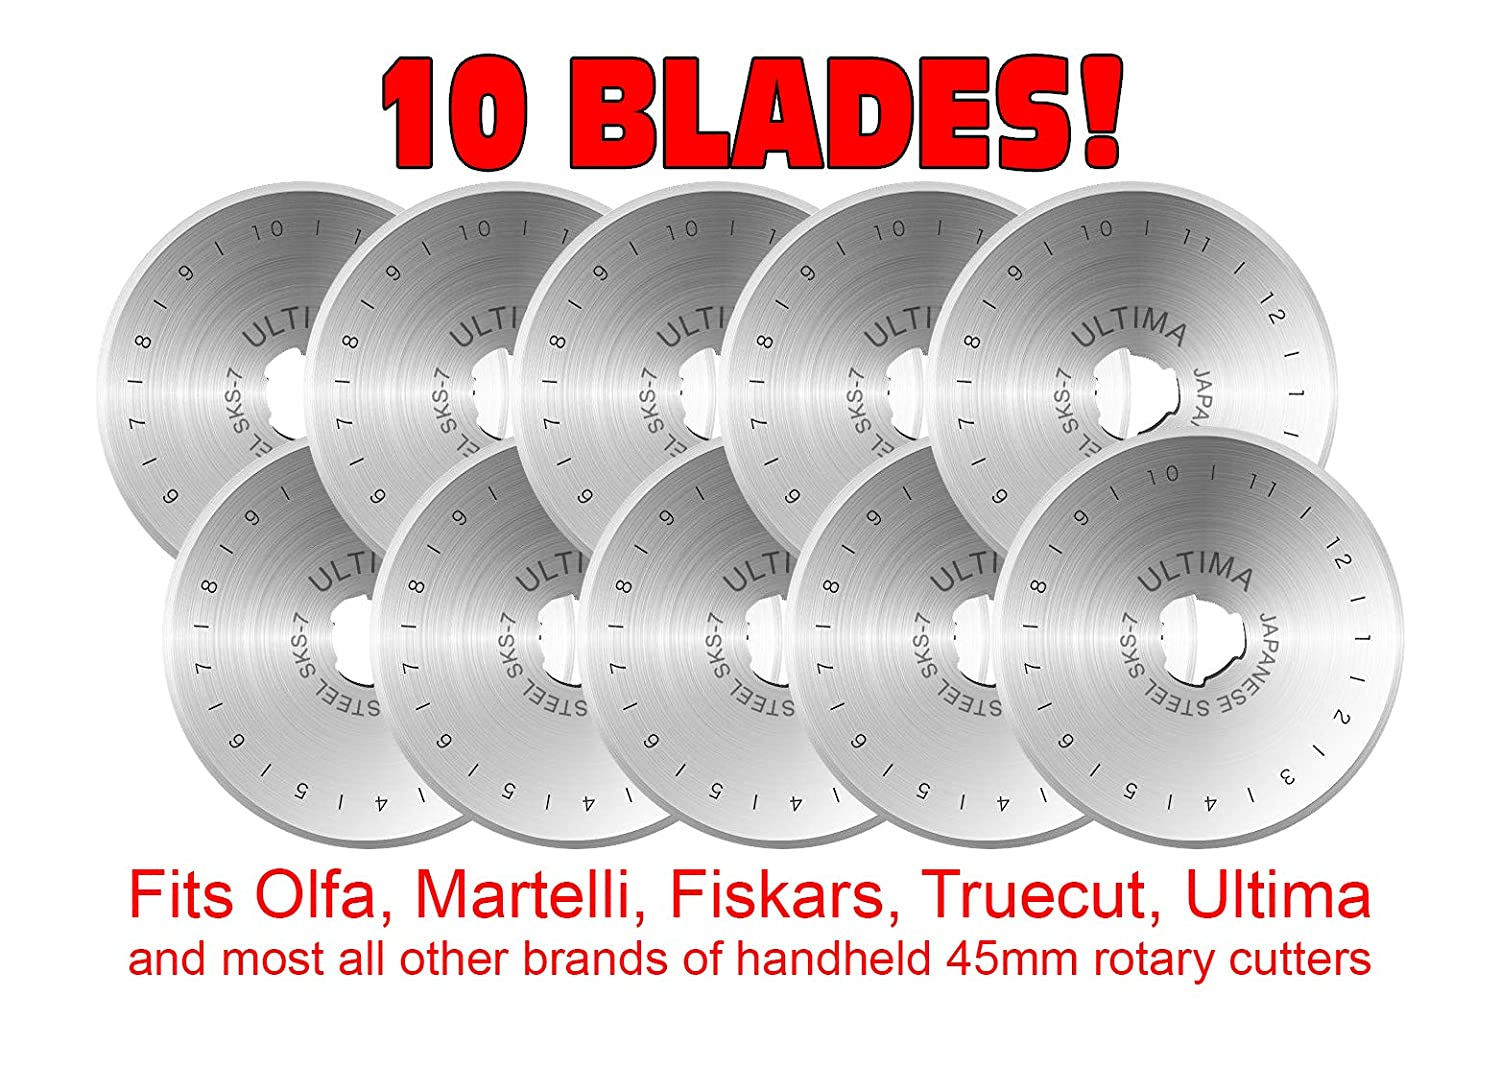 Ultima 45mm Rotary Cutter Blades - 10 Pack - Fits All Rotary Cutters Including Fiskars, Olfa, Martelli and TrueCut - Cuts Quilting Fabric, Leather, and More